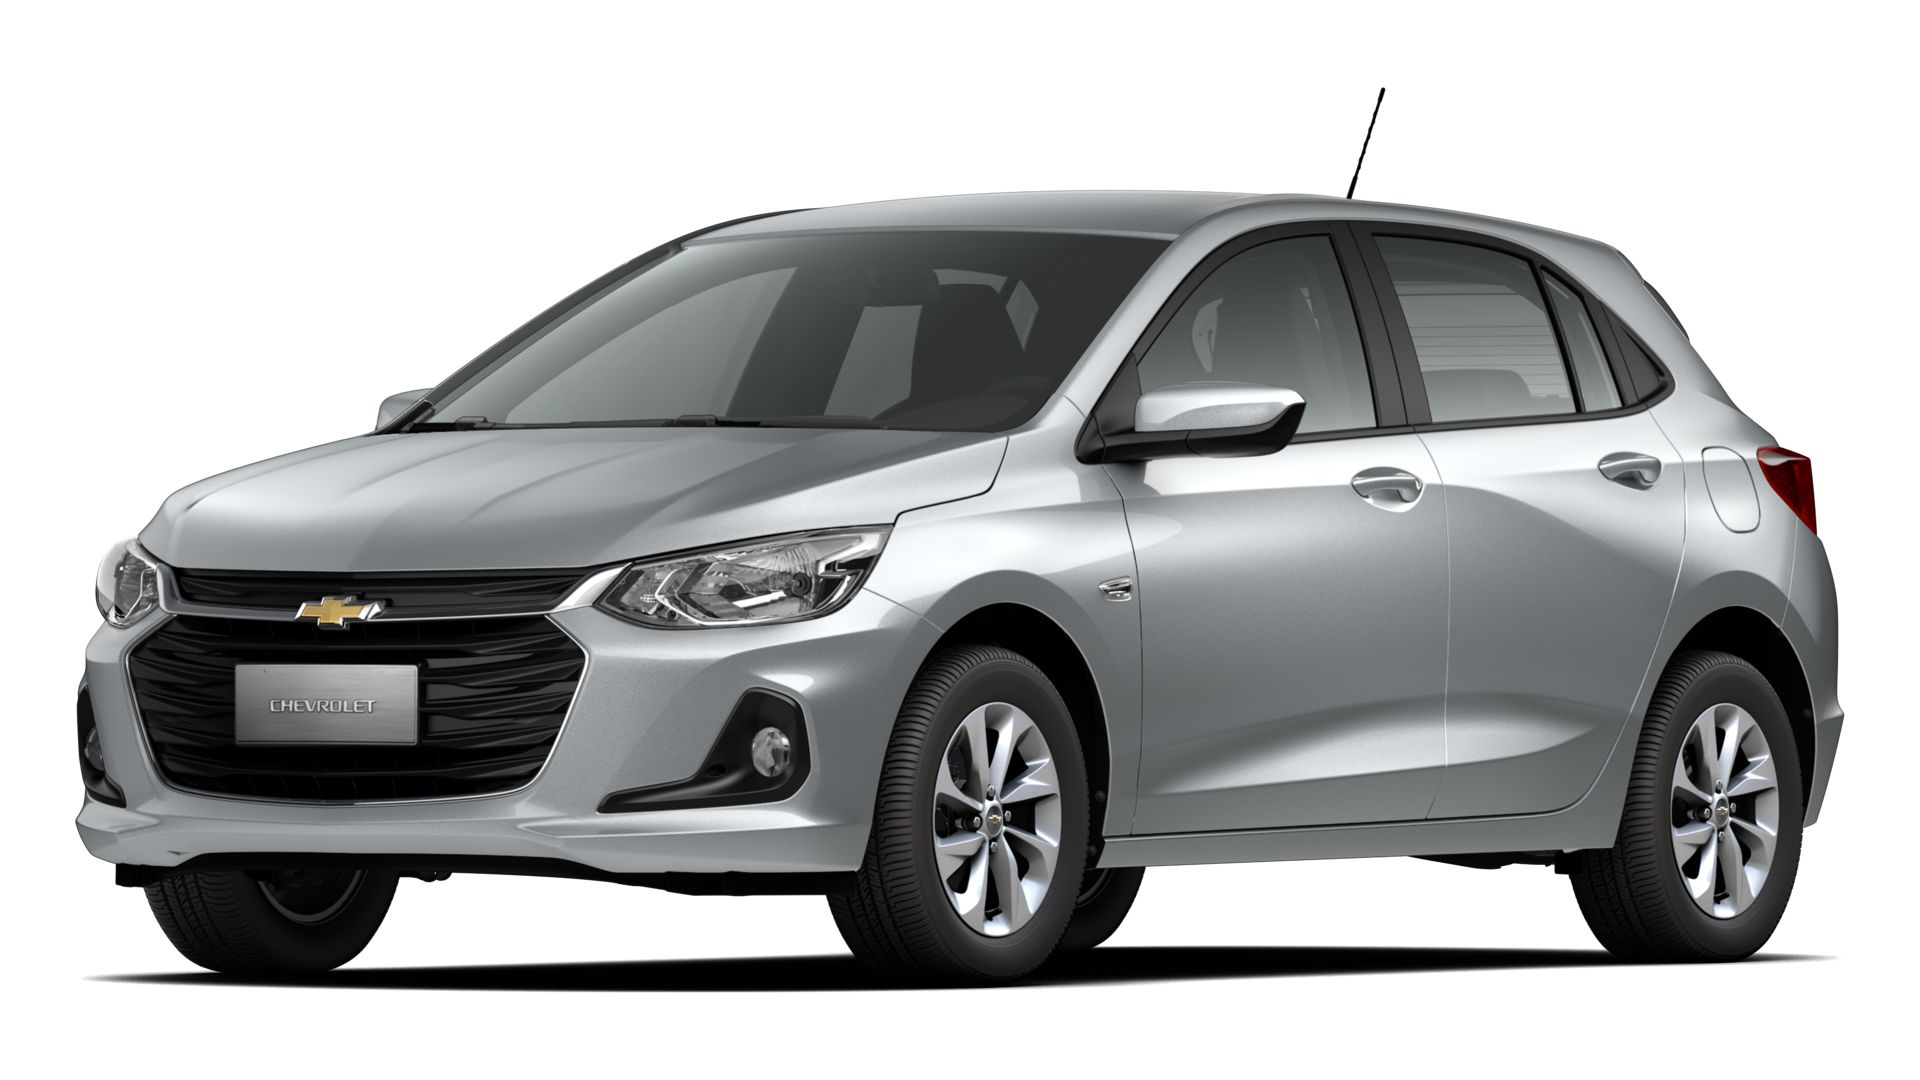 CHEVROLET ONIX LT 1.0 TURBO 2020